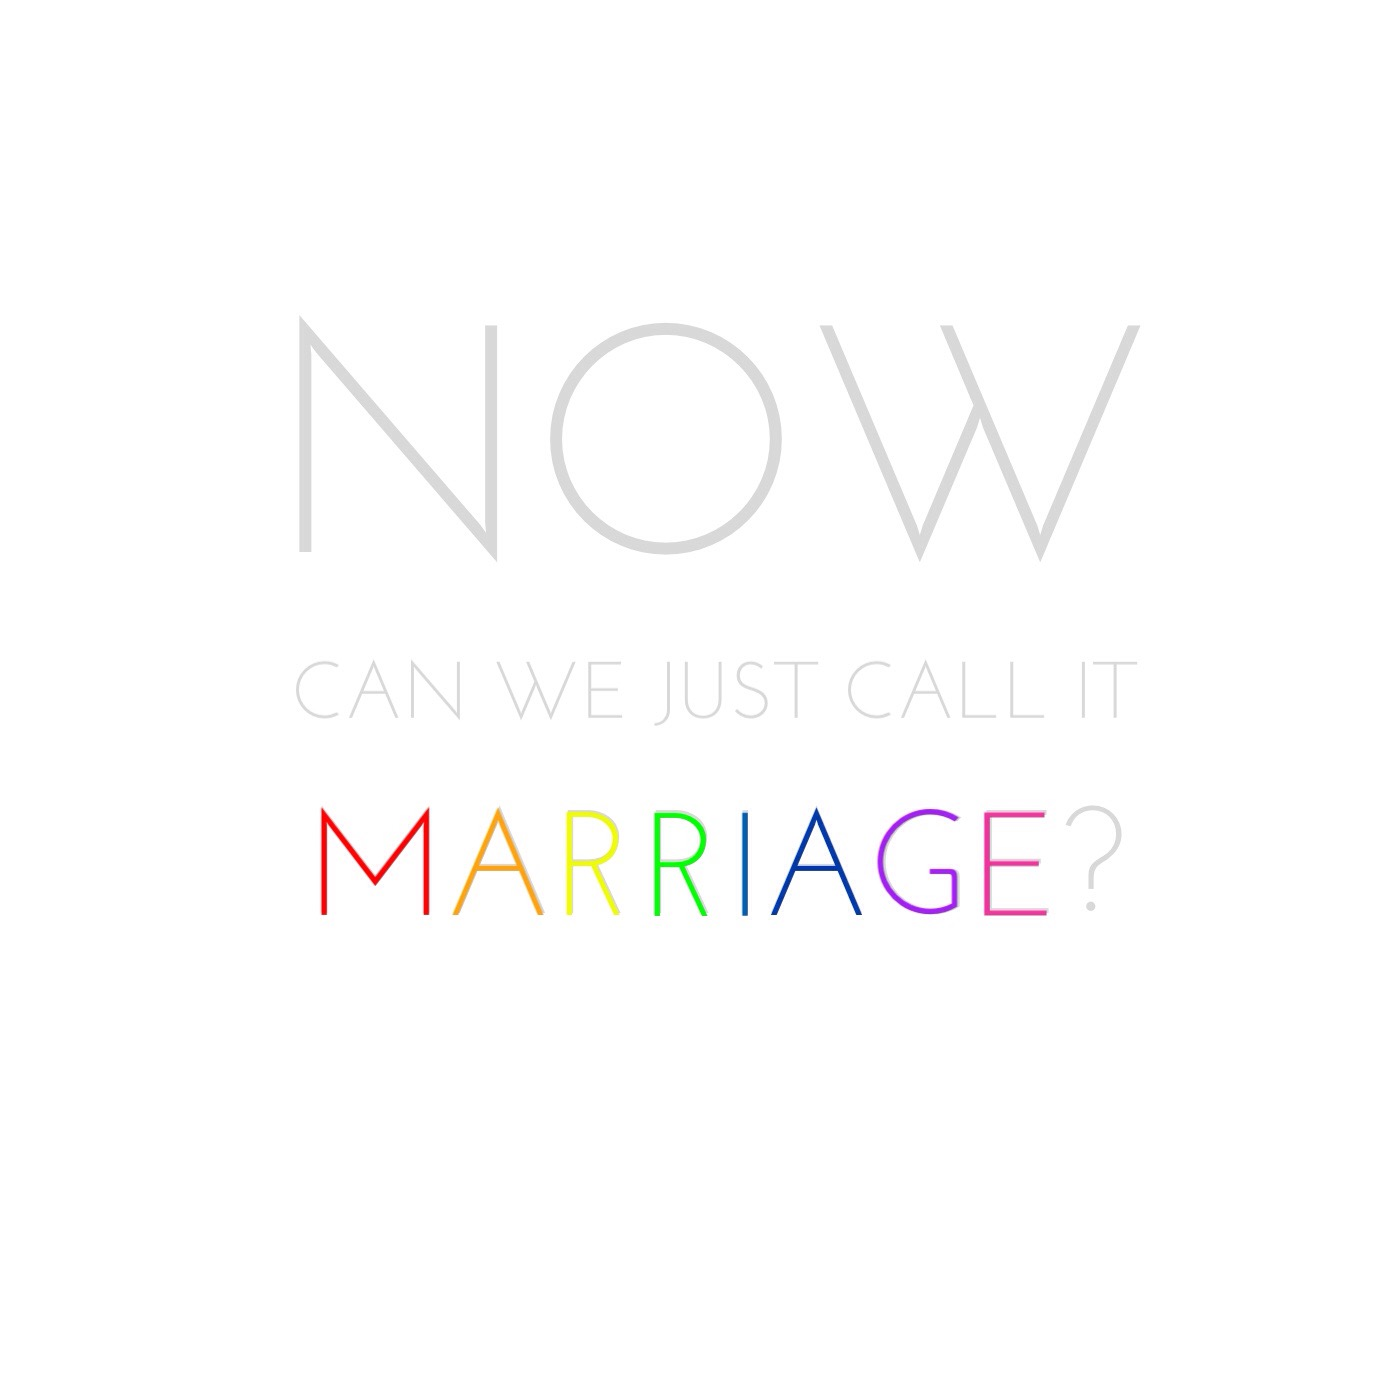 Just call it marriage